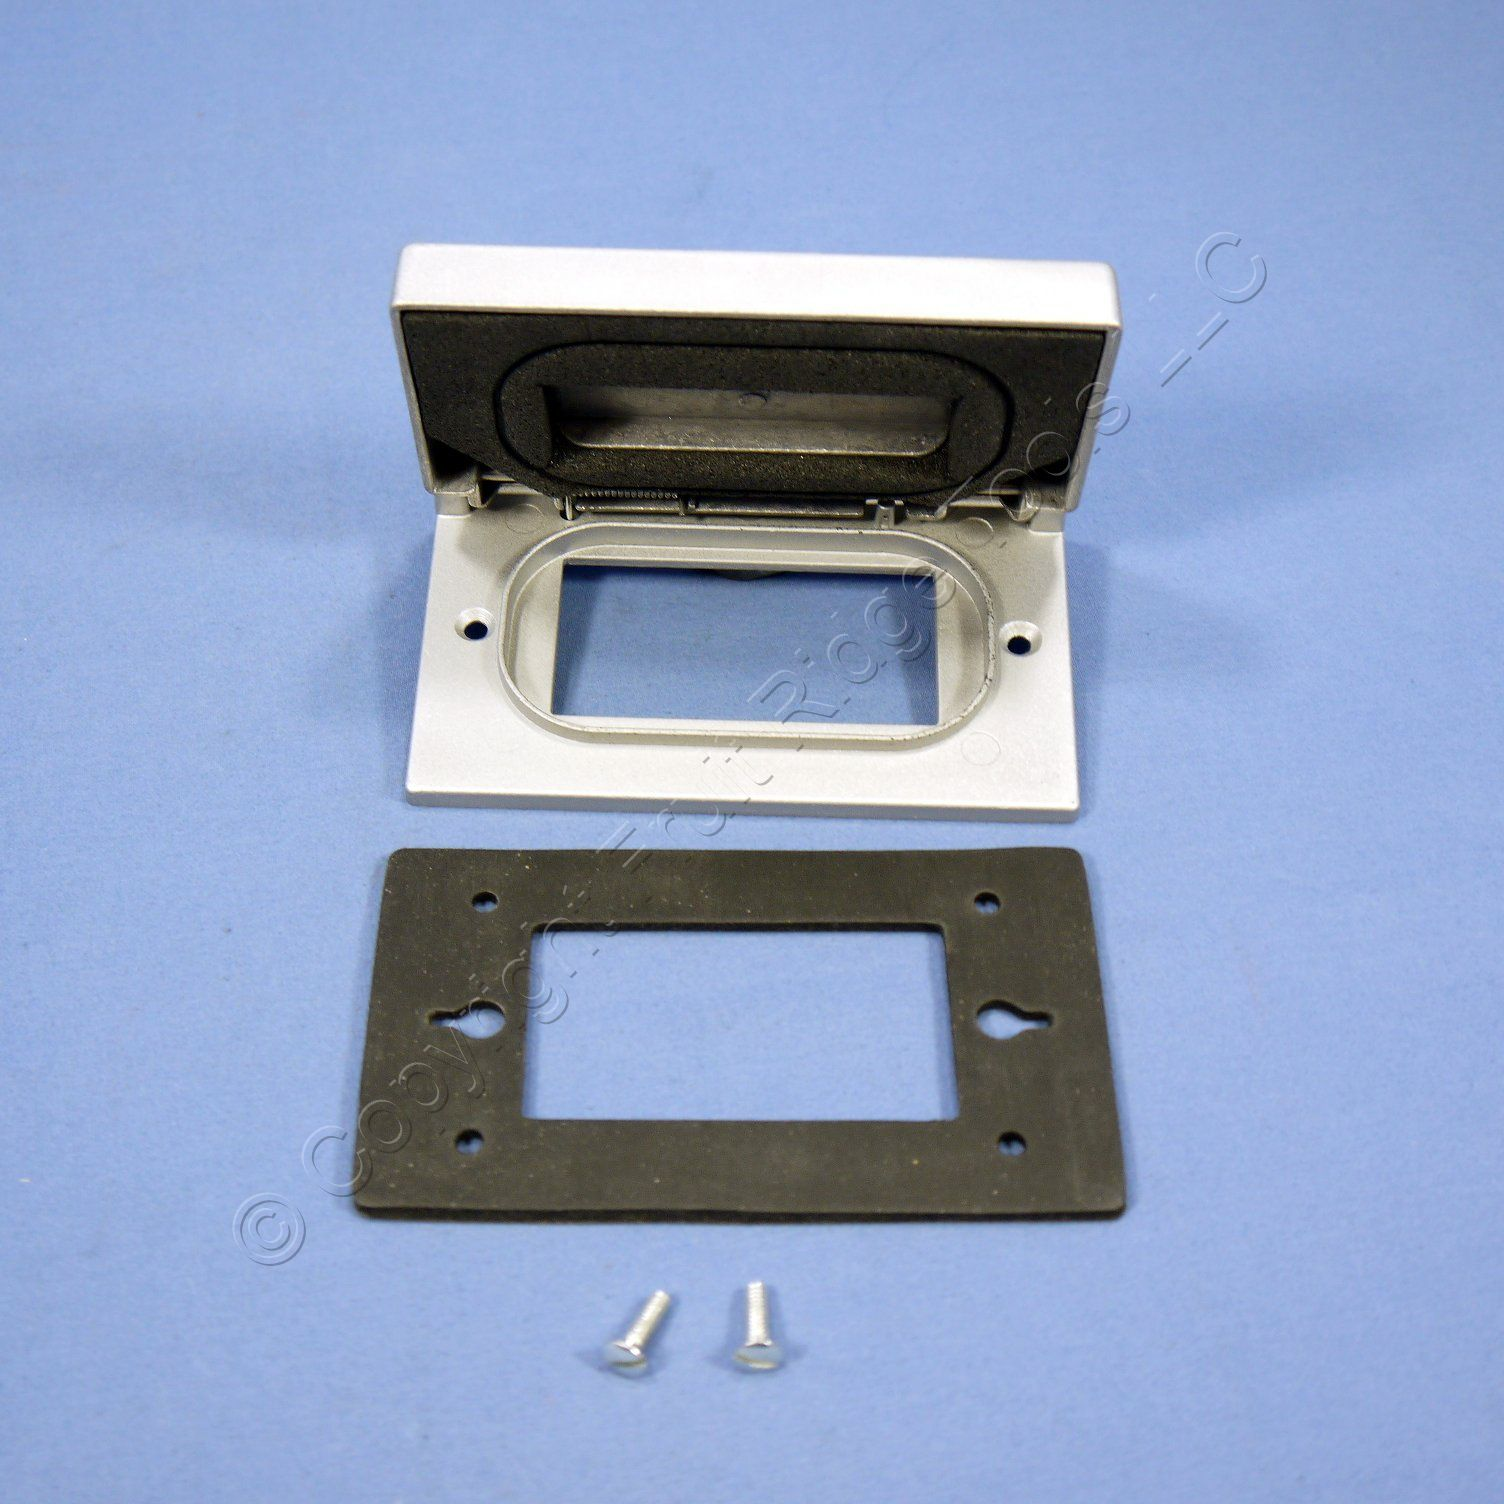 Arrow Hart Gray Gfci Weather Resistant Outdoor Receptacle Outlet Cover Gfi 4501 Ebay